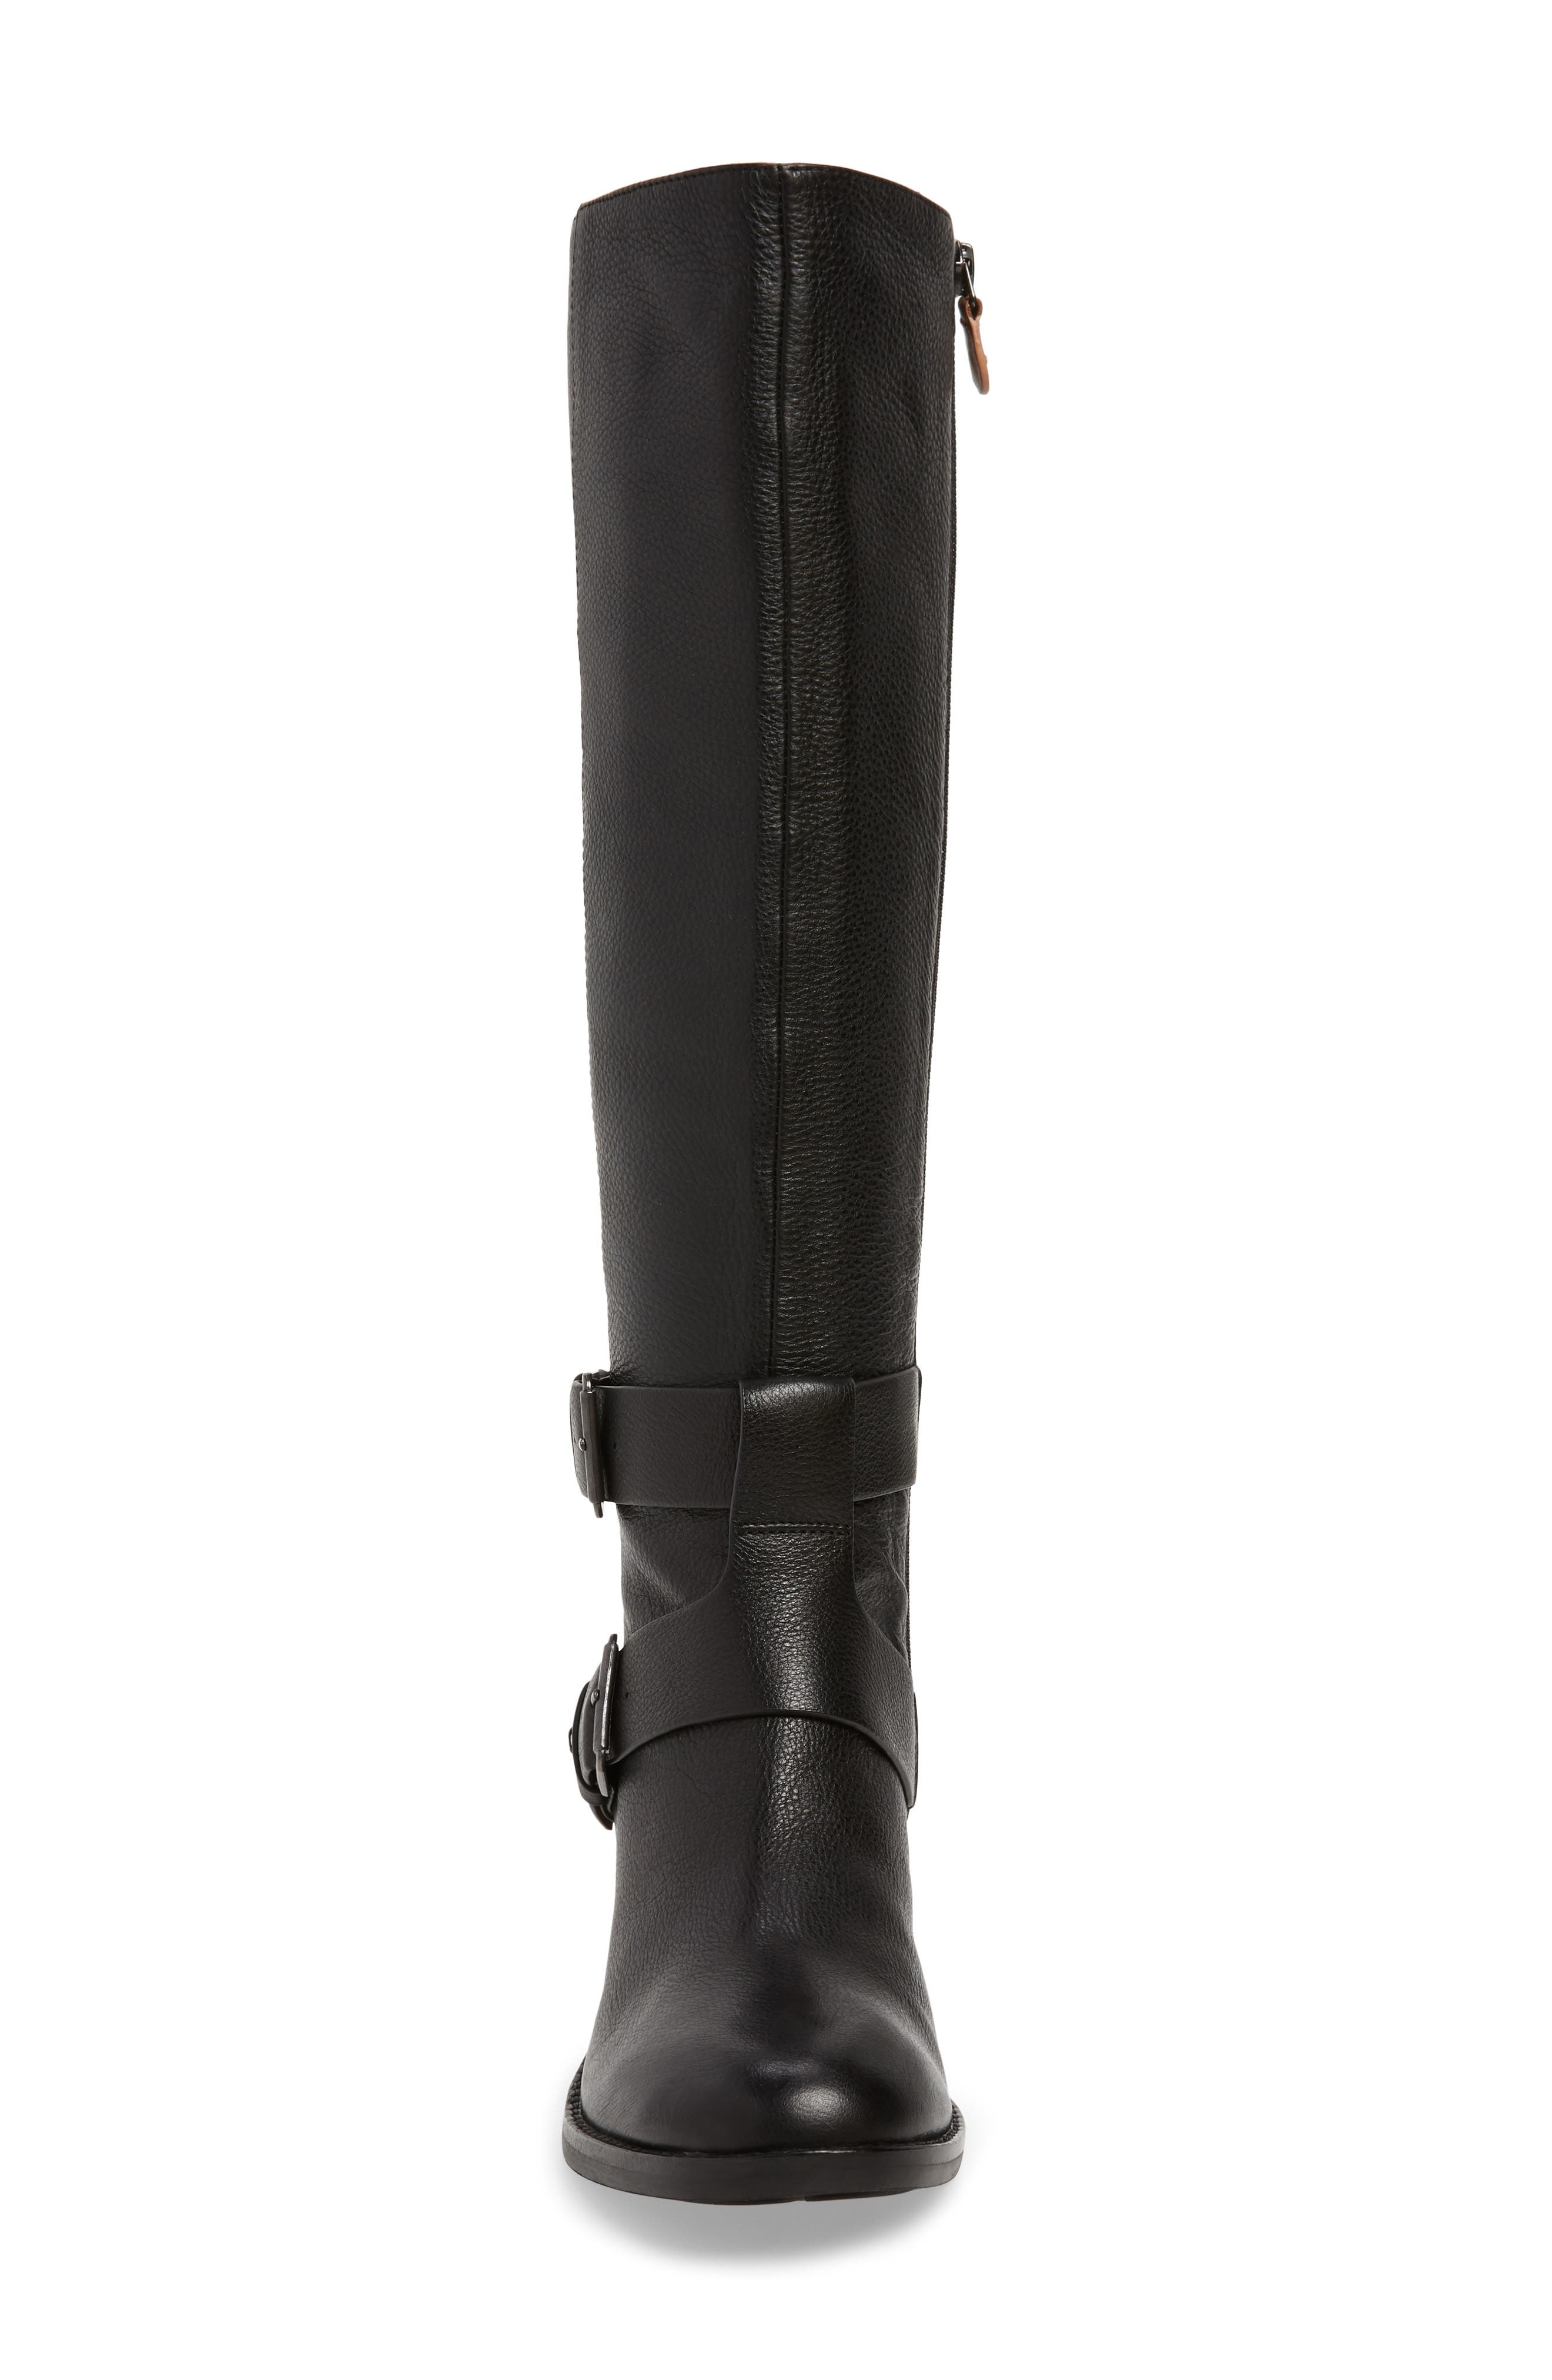 GENTLE SOULS BY KENNETH COLE, Verona Knee-High Riding Boot, Alternate thumbnail 4, color, 001